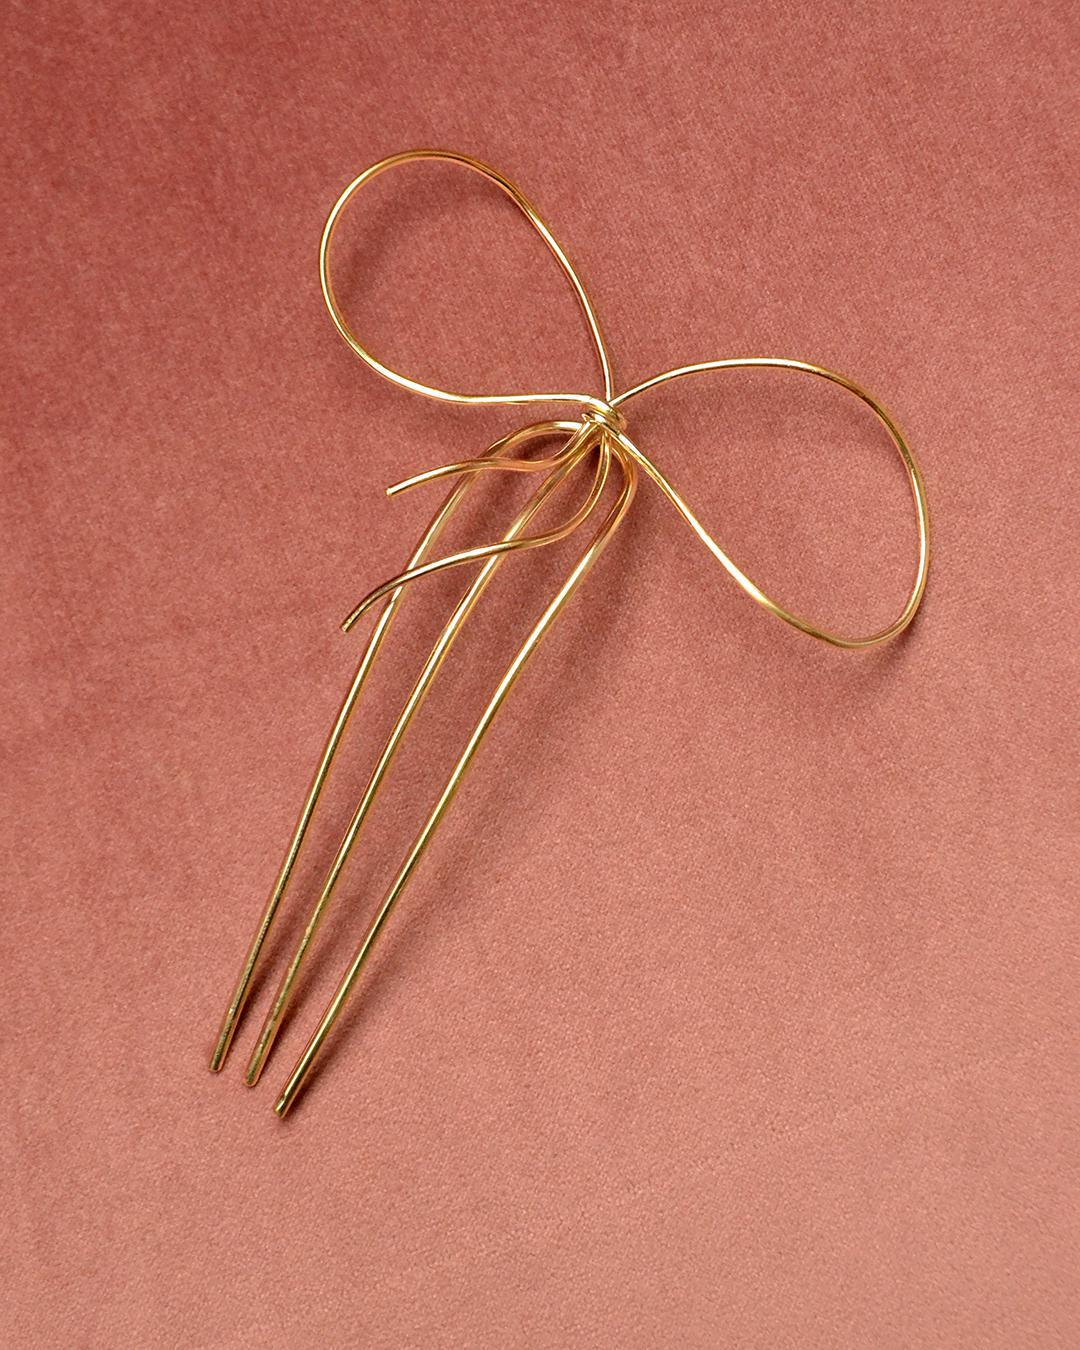 BEATRIZ PALACIOS Bow Tie Hair Comb